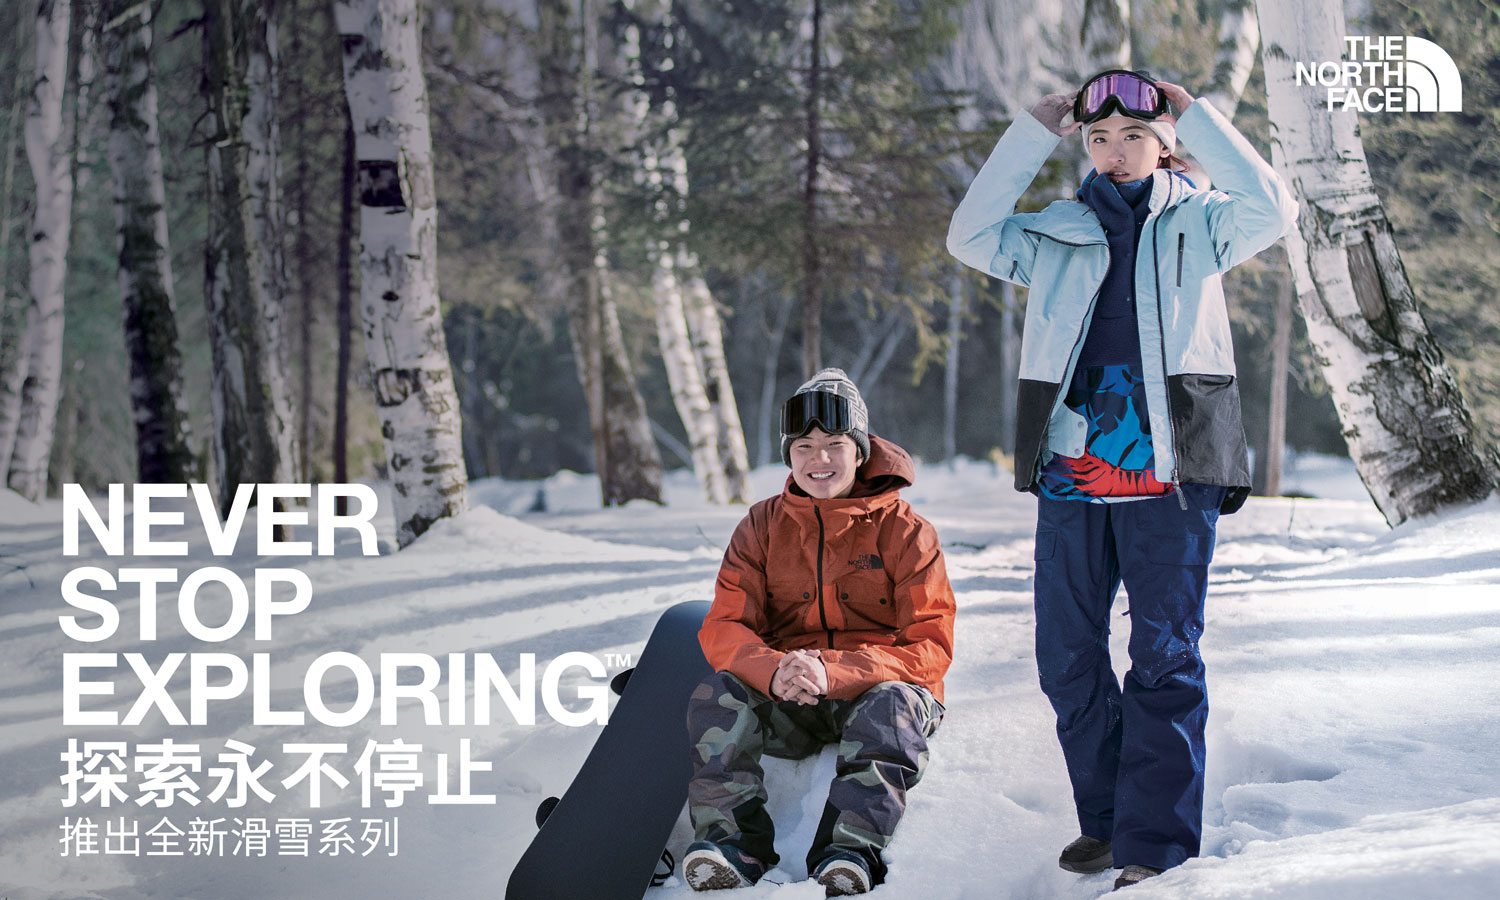 THE NORTH FACE 发布全新滑雪系列